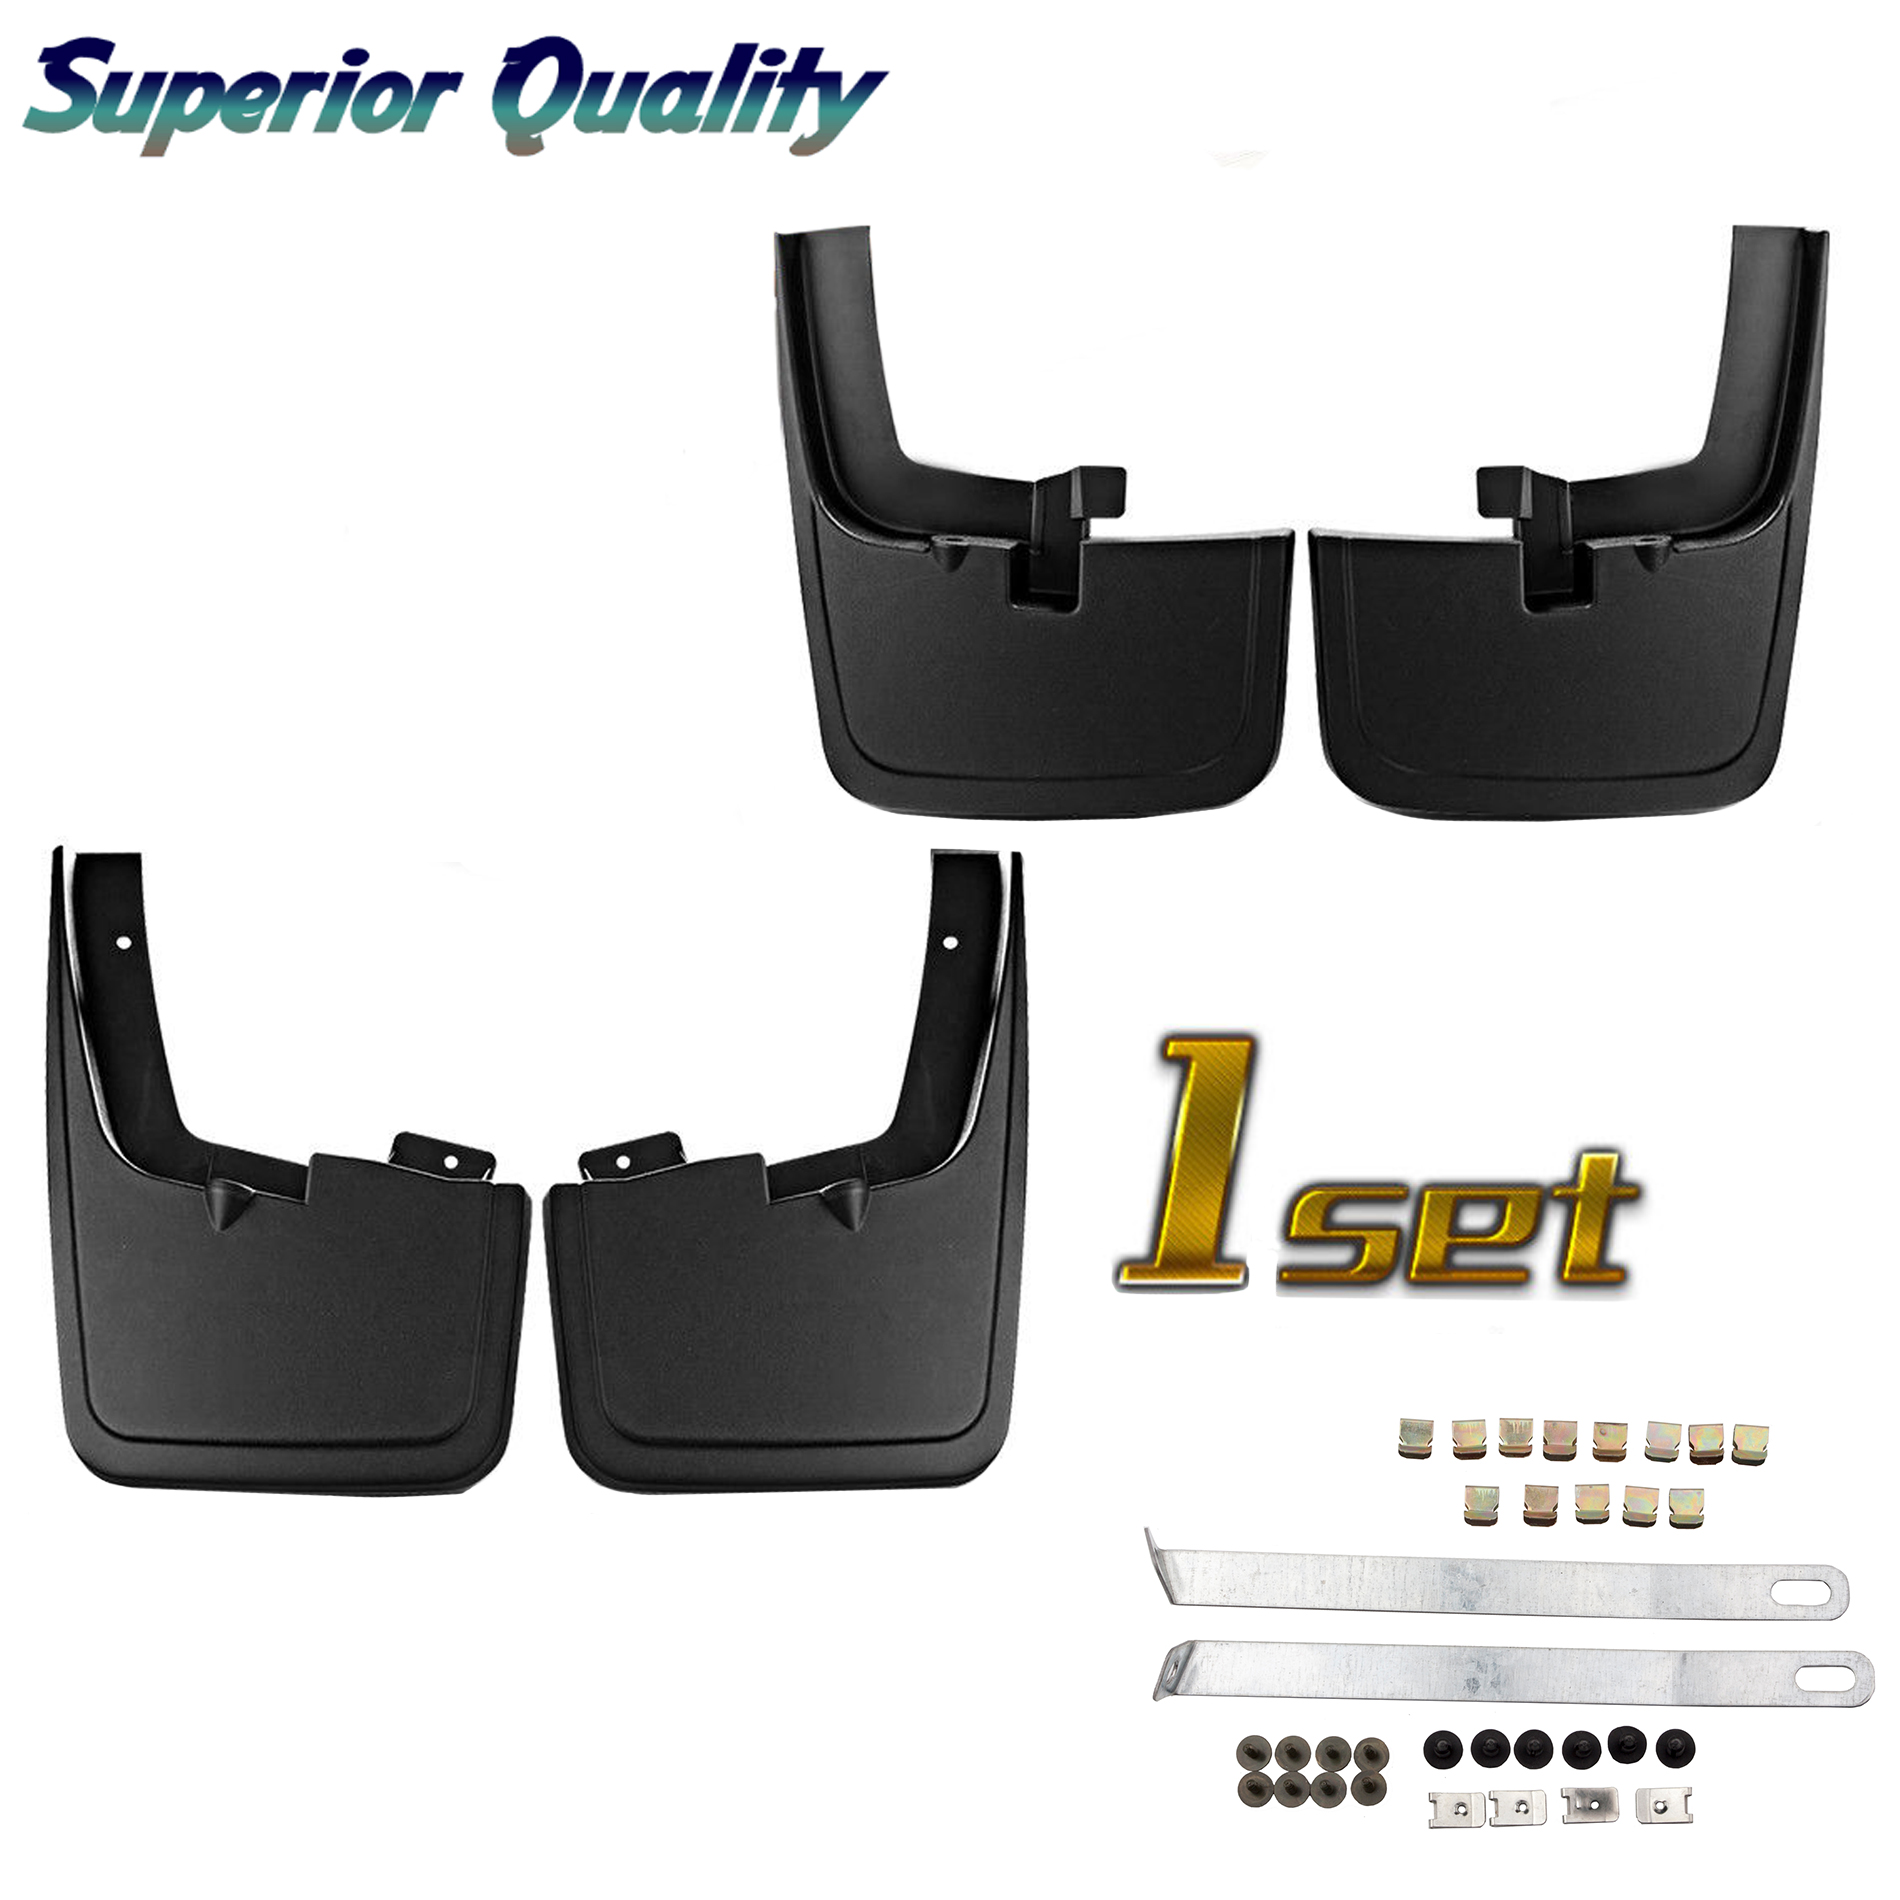 CF Advance For 15-18 For 2015-2018 Ford F-150 Front Rear Left Right Black Molded Splash Guards Mud Flap Set of 4pcs 2015 2016 2017 2018